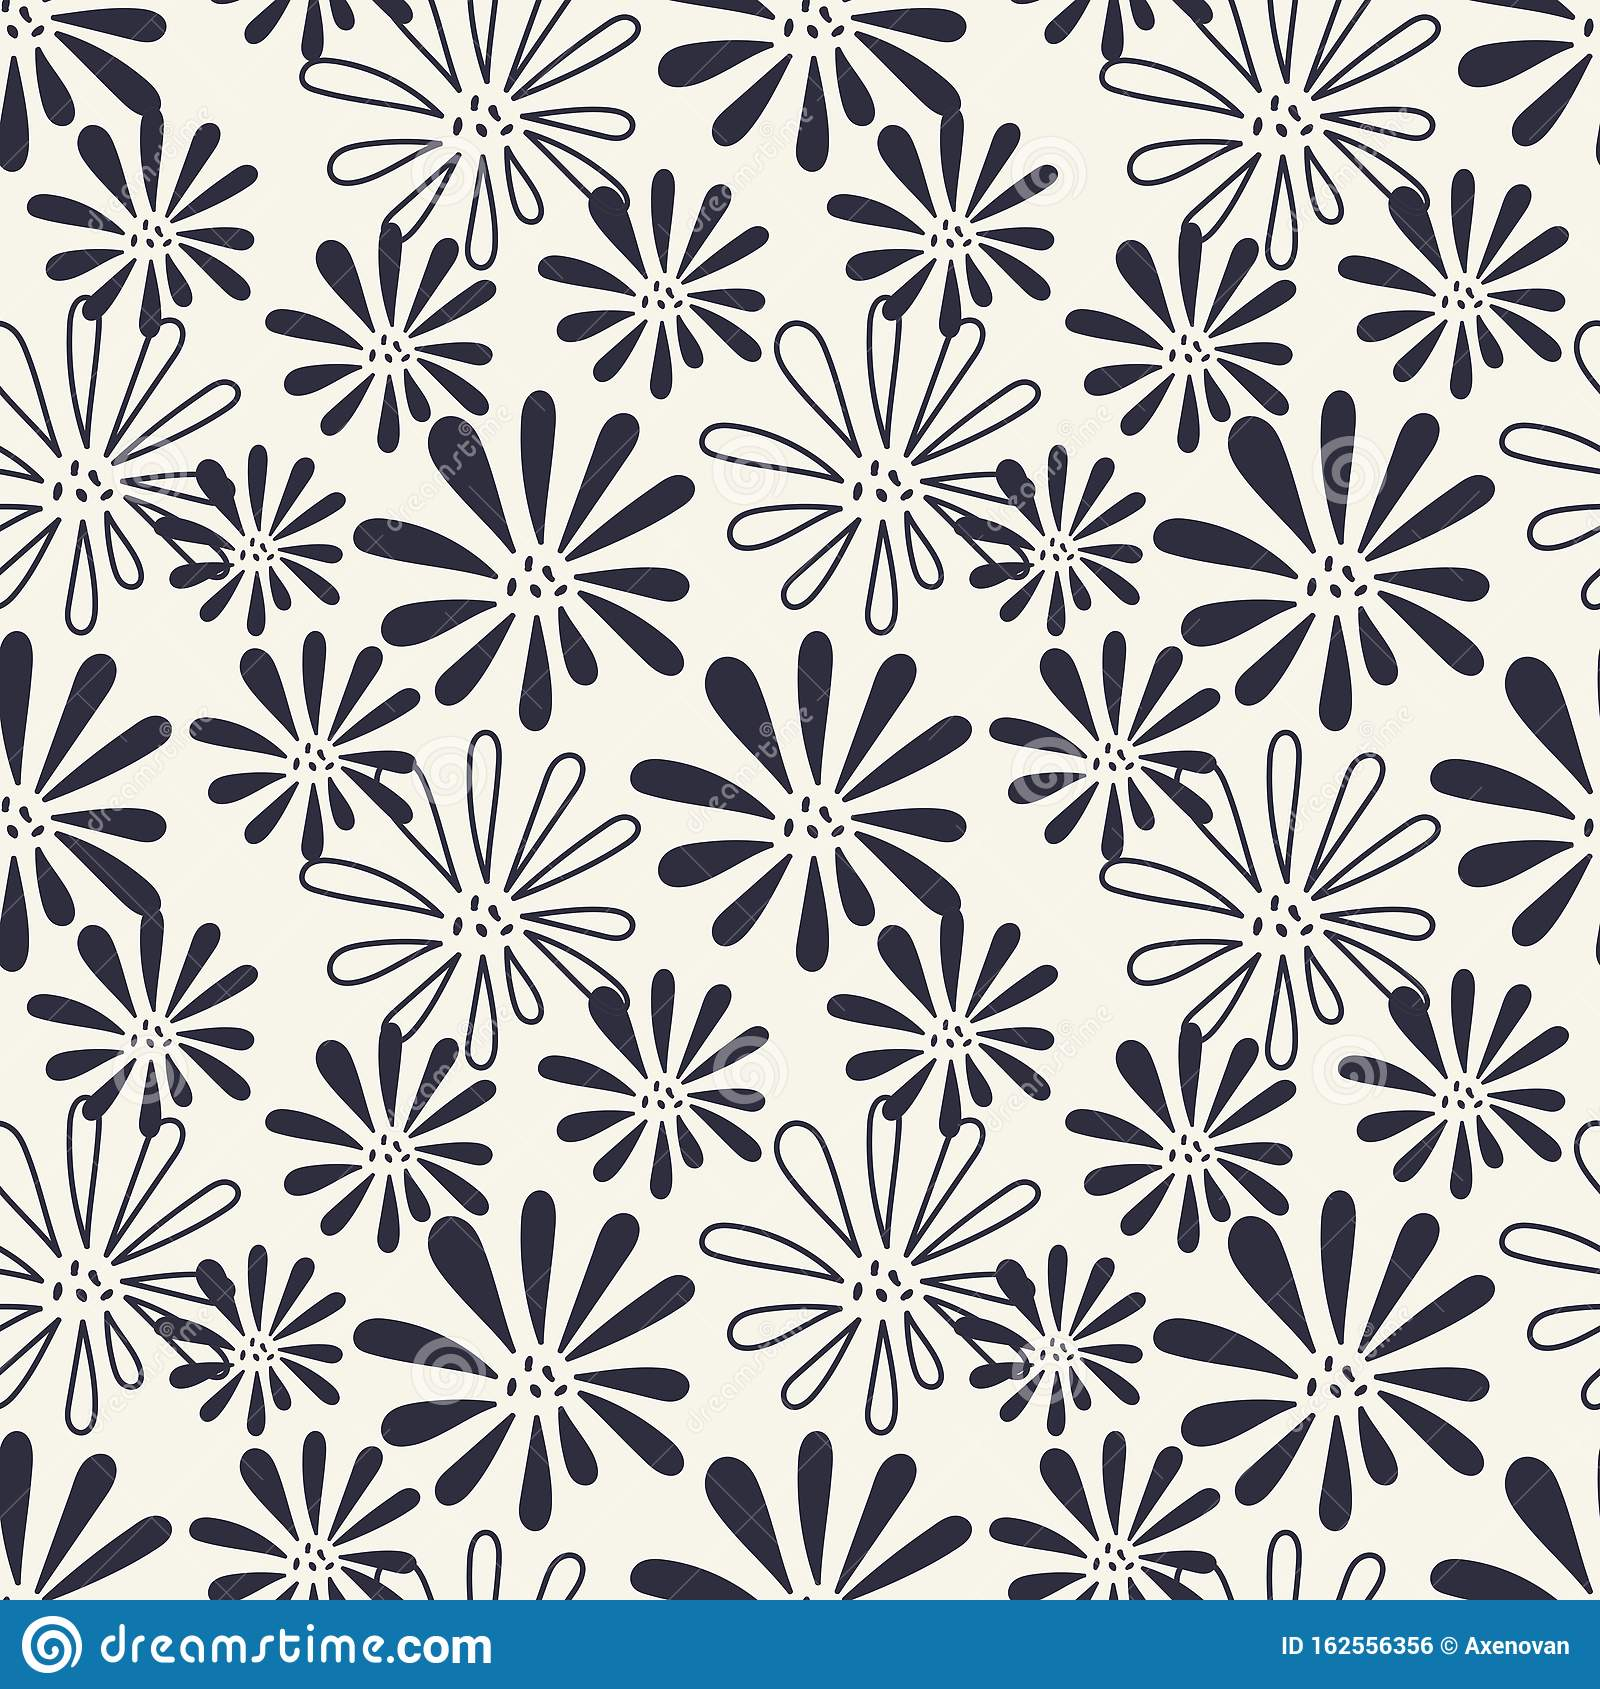 Monochrome Seamless Background Simple Flat Floral Motif